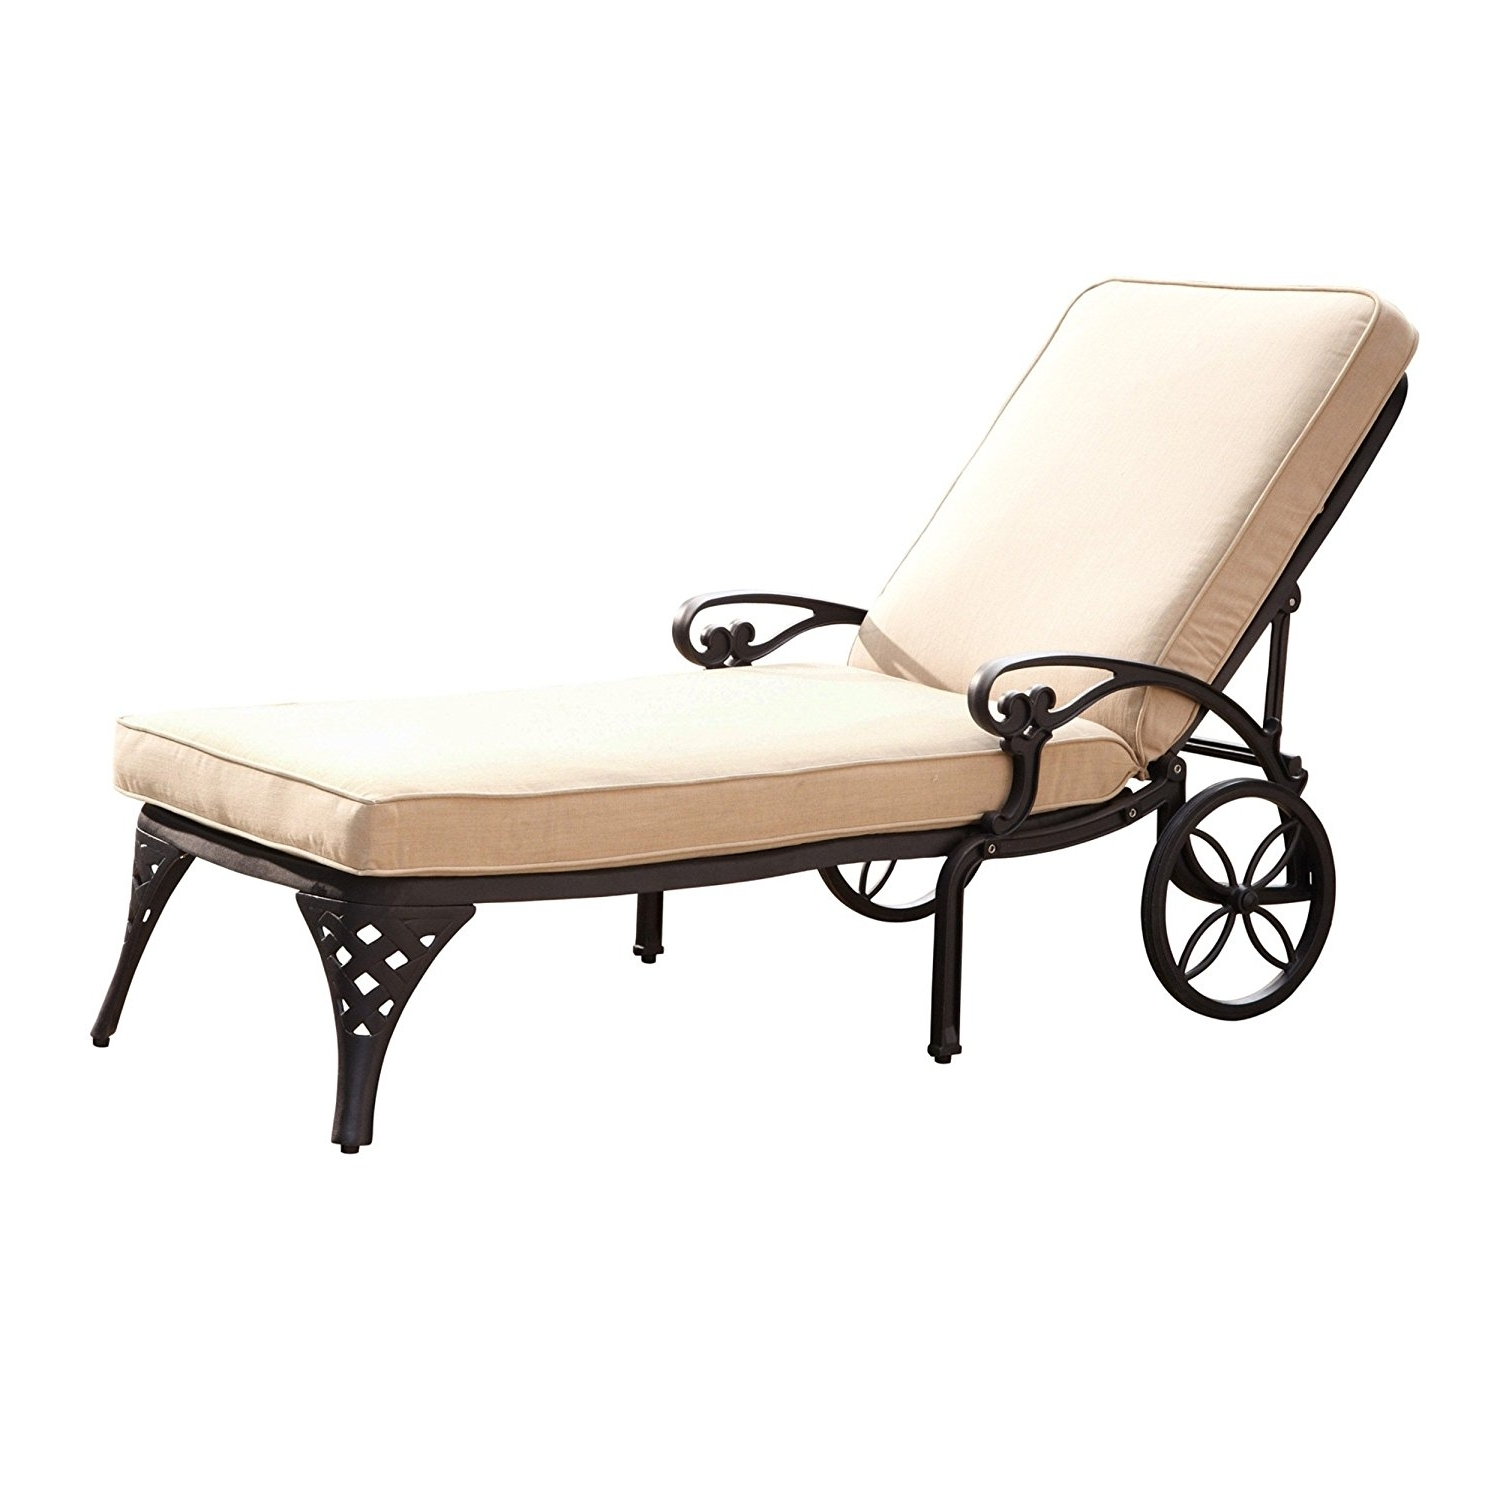 Outdoor Cushions For Chaise Lounge Chairs In Most Up To Date Amazon : Home Styles Biscayne Chaise Lounge Chair, Taupe (View 15 of 15)